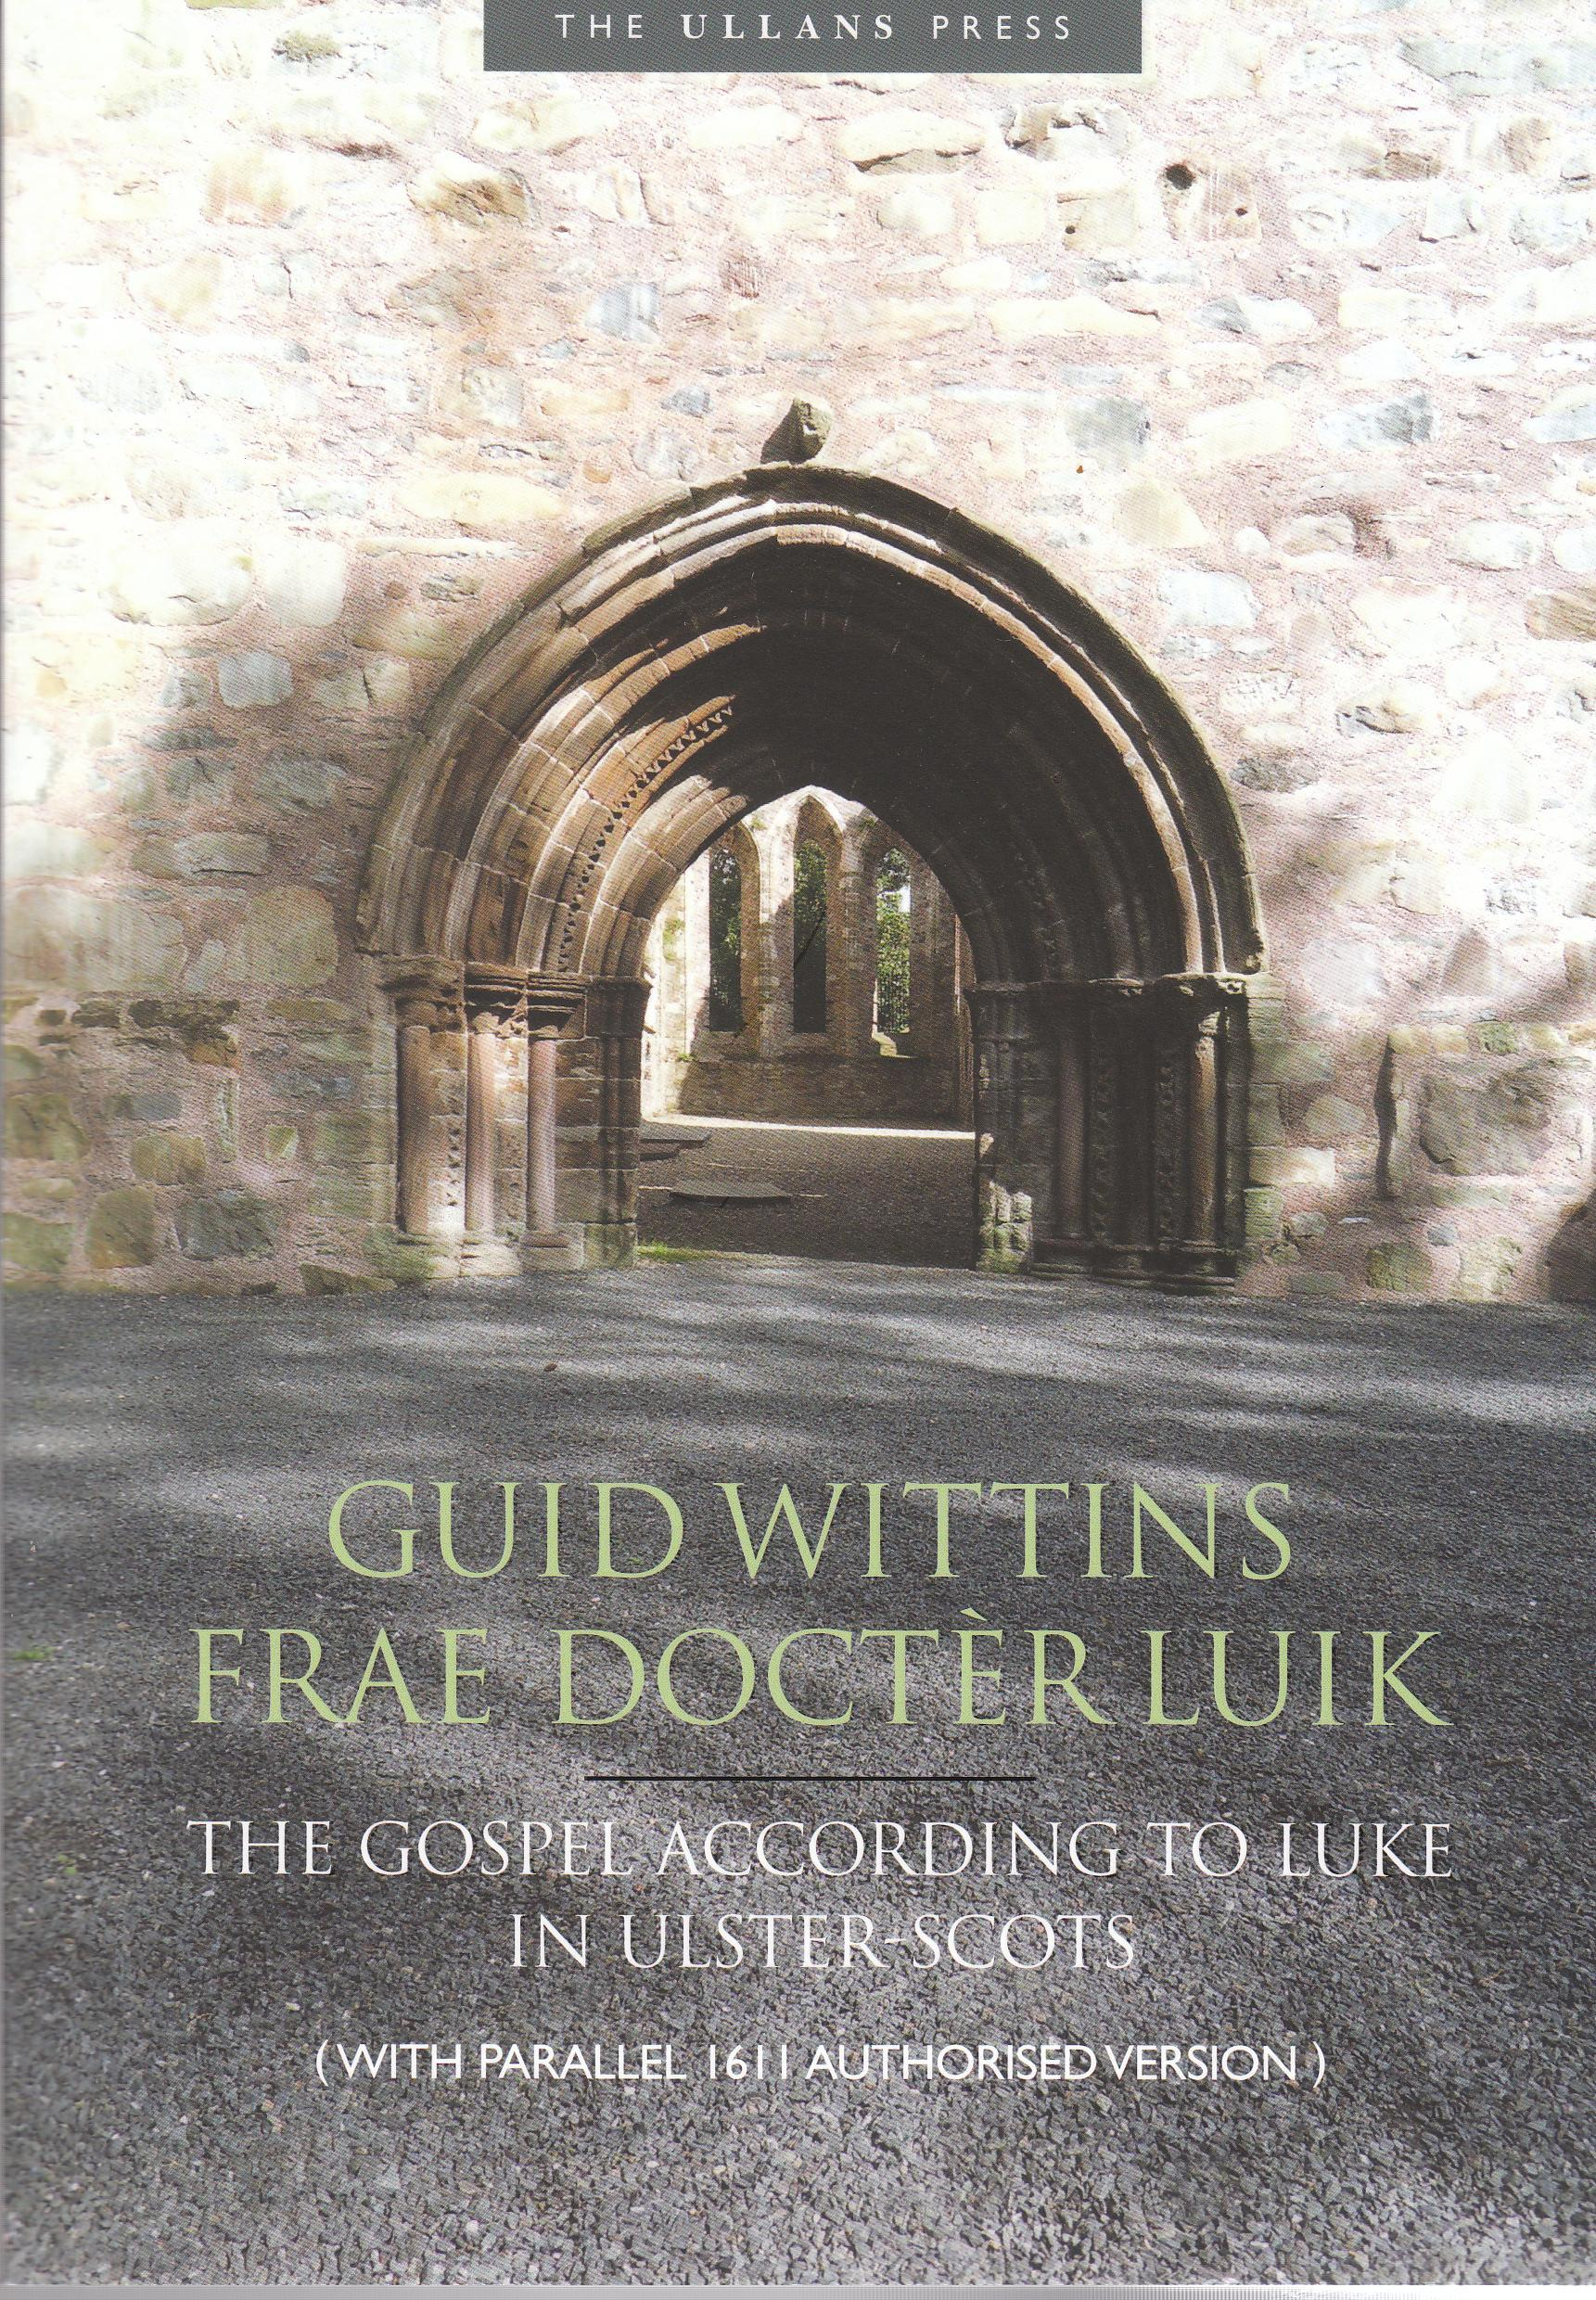 Wittens frae Docter Luik: The Gospel according to Luke in Ulster-Scots (with parallel 1611 Authorised Version)